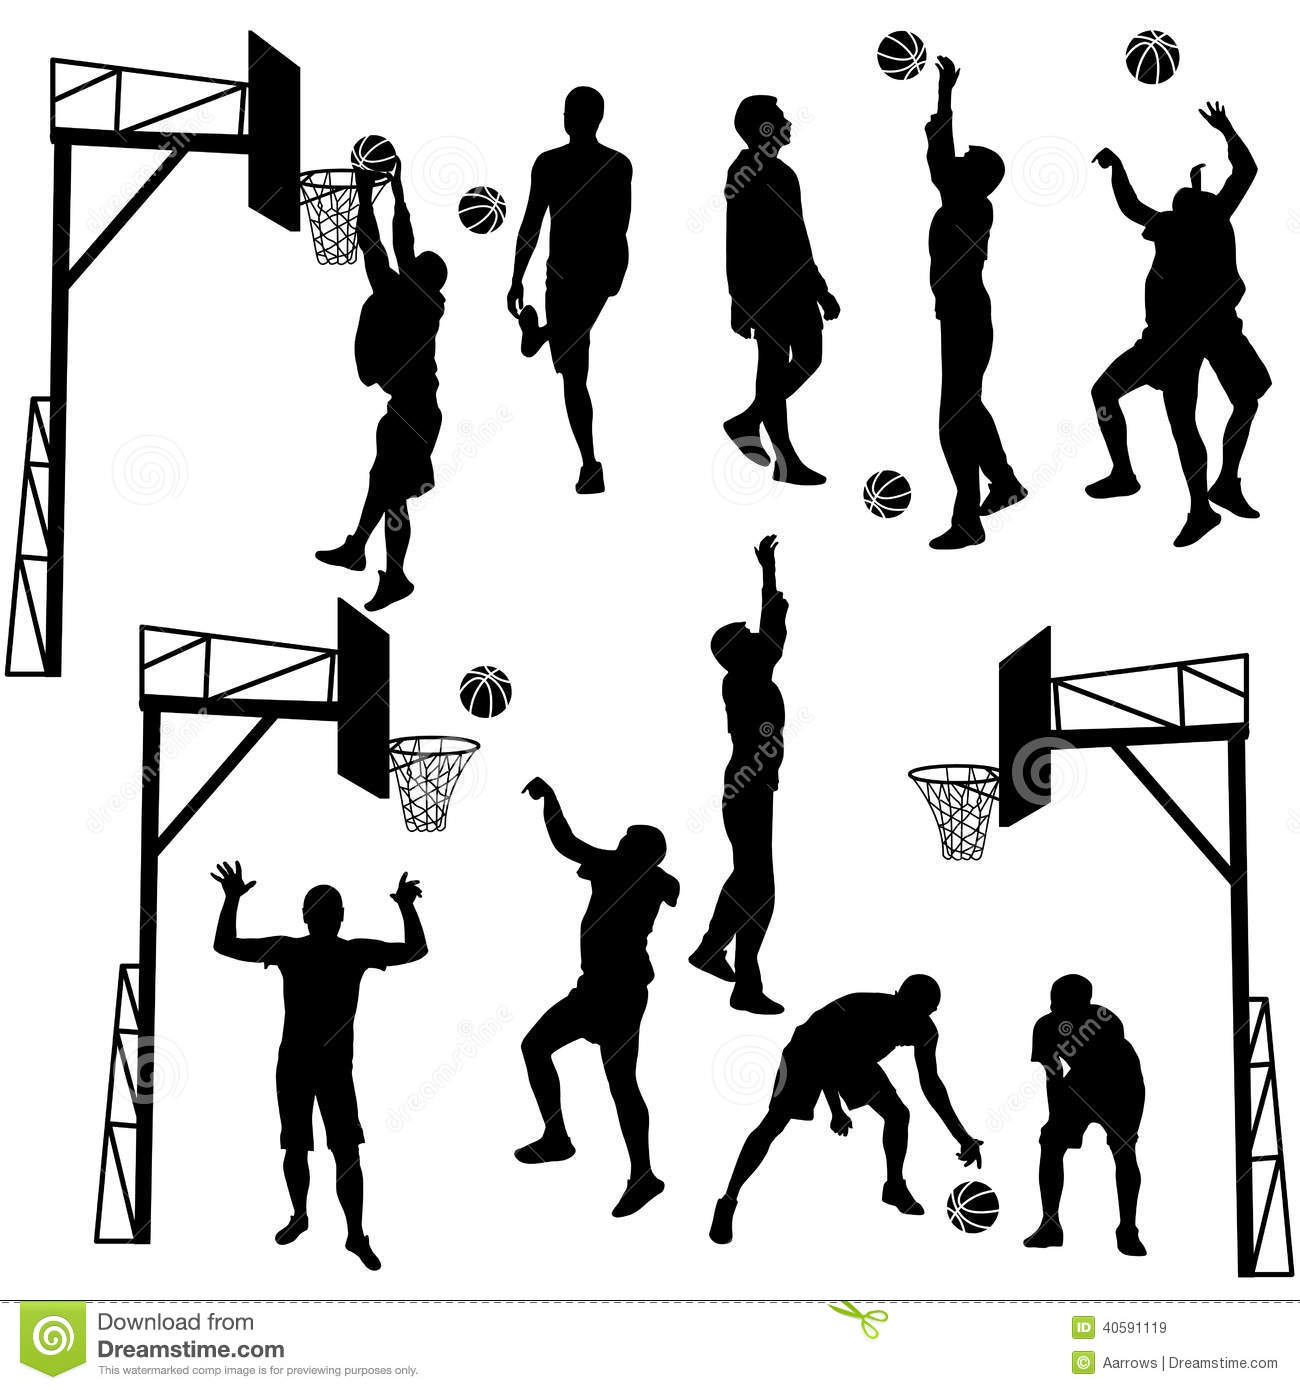 Black Silhouettes Of Men Playing Basketball On A White